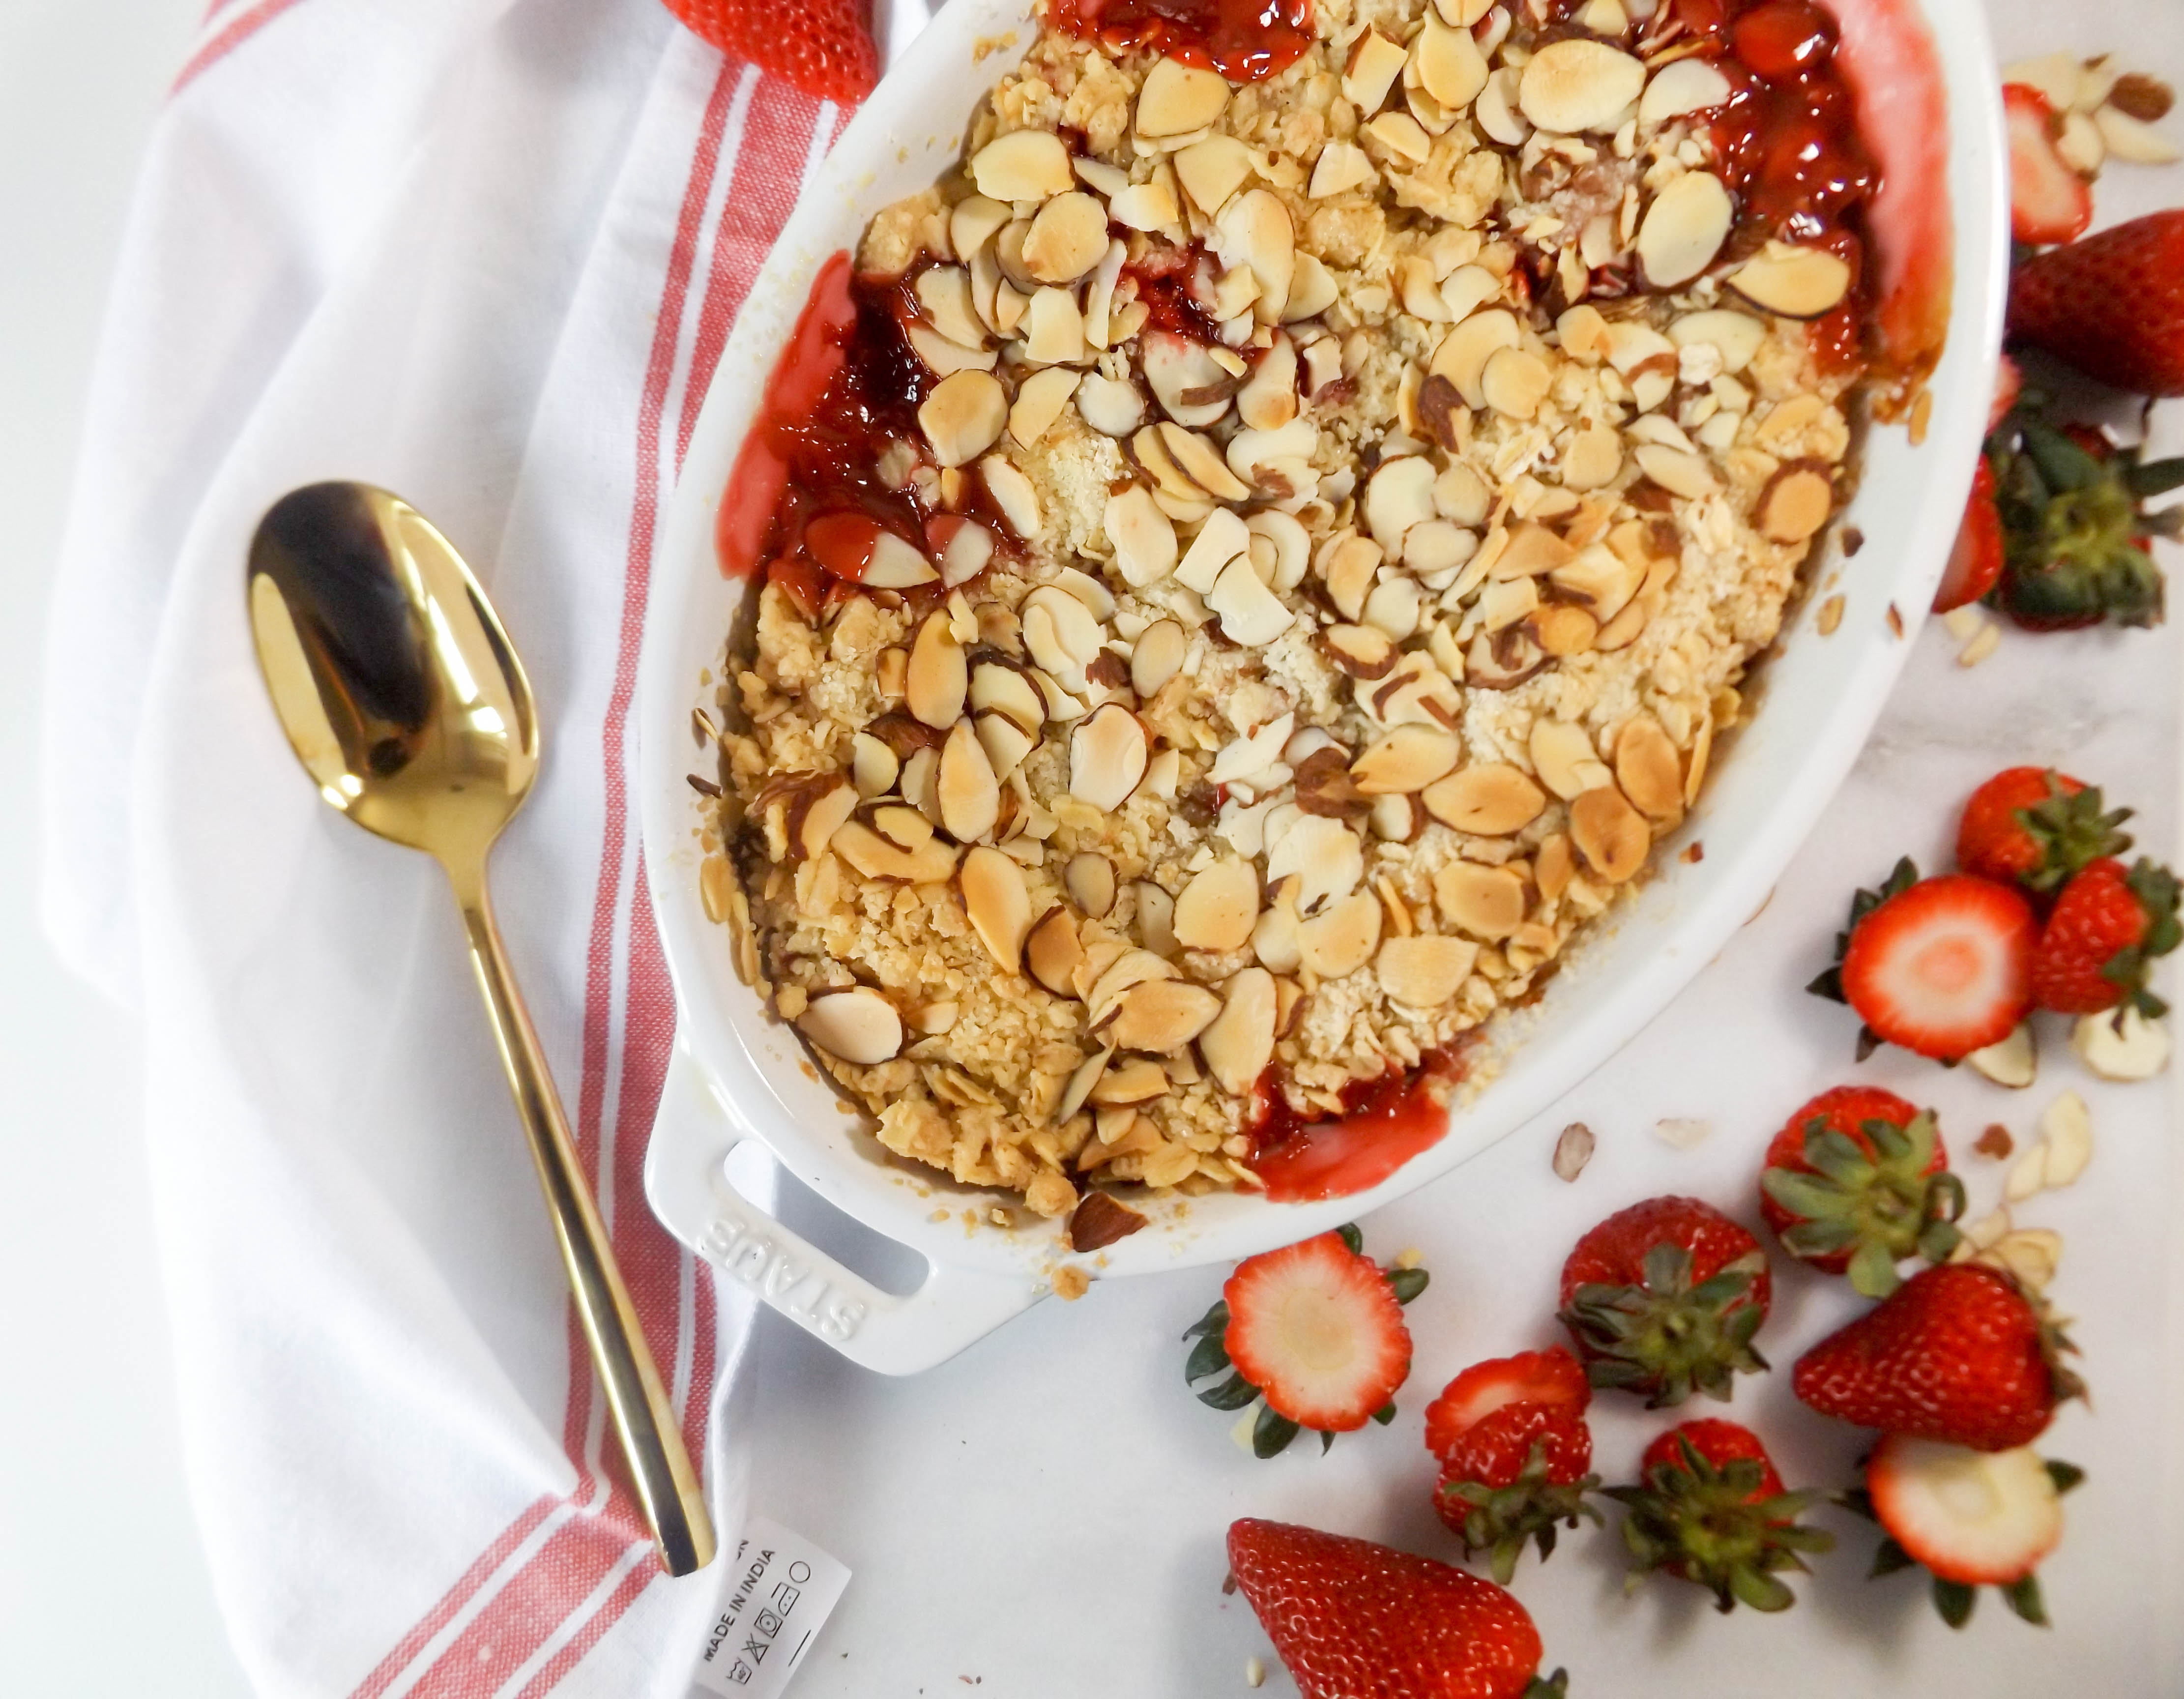 Strawberry Rhubarb Almond Crisp